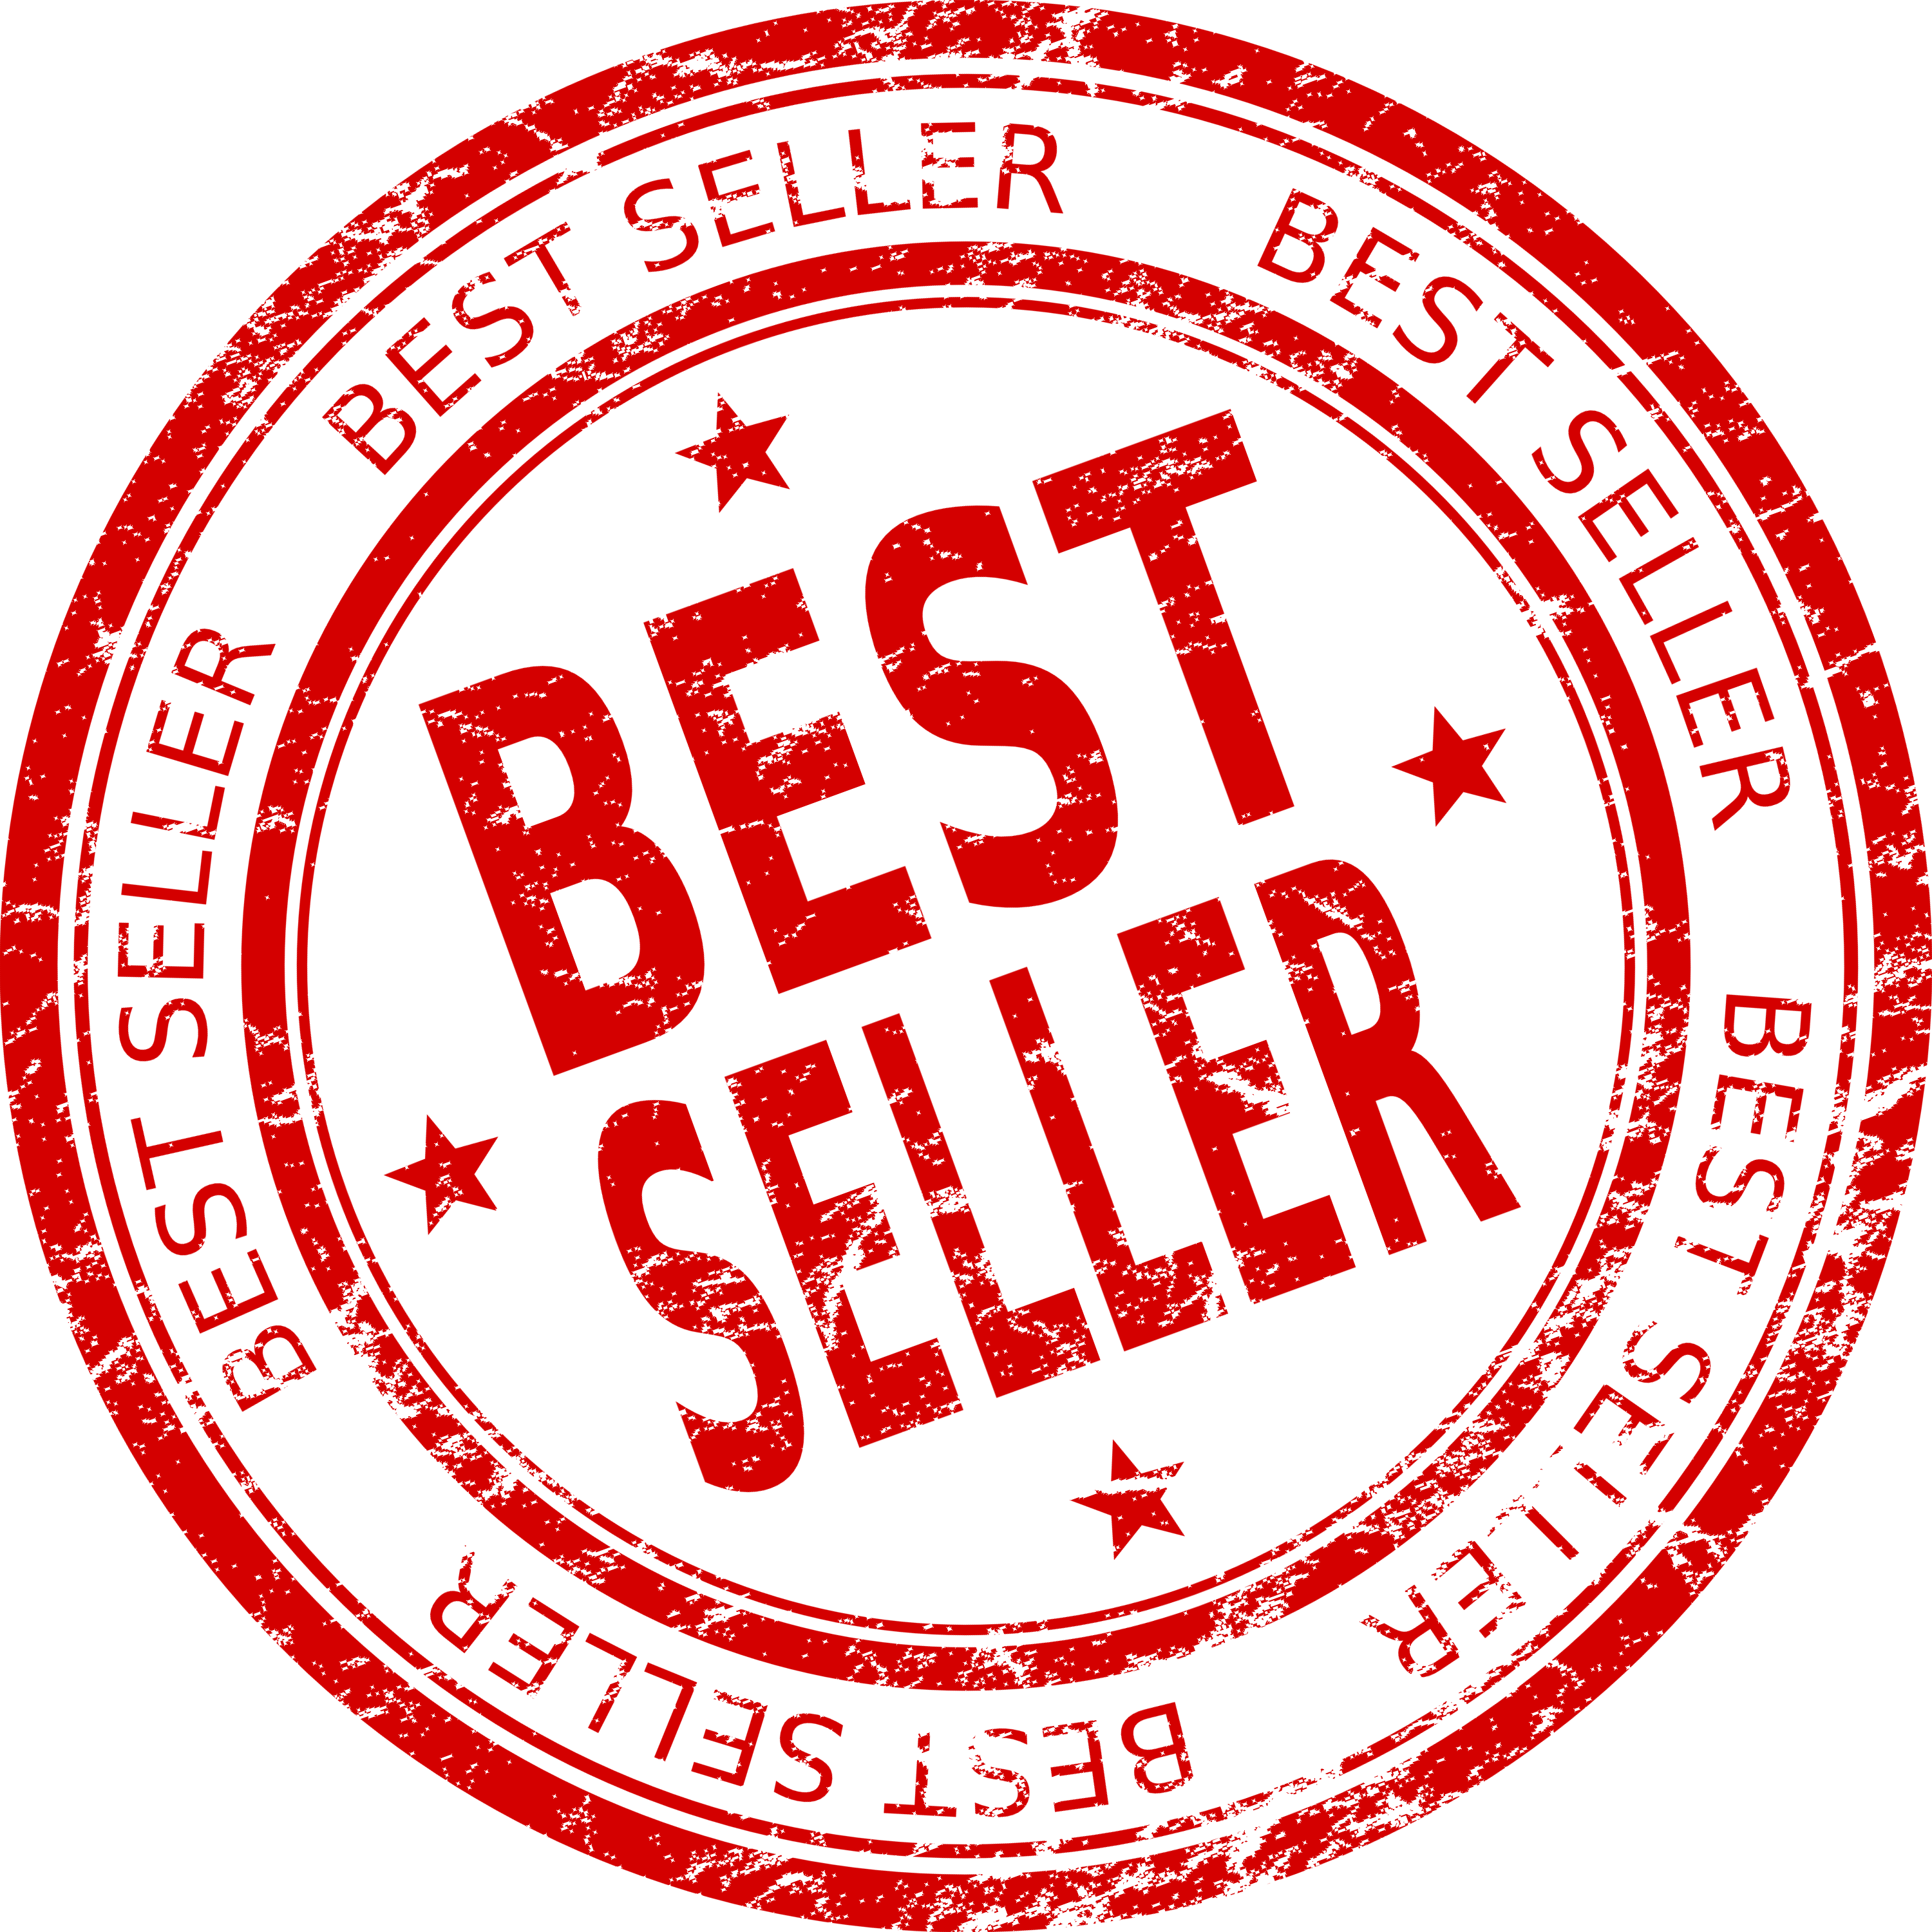 Stamp here png. Best seller stamps